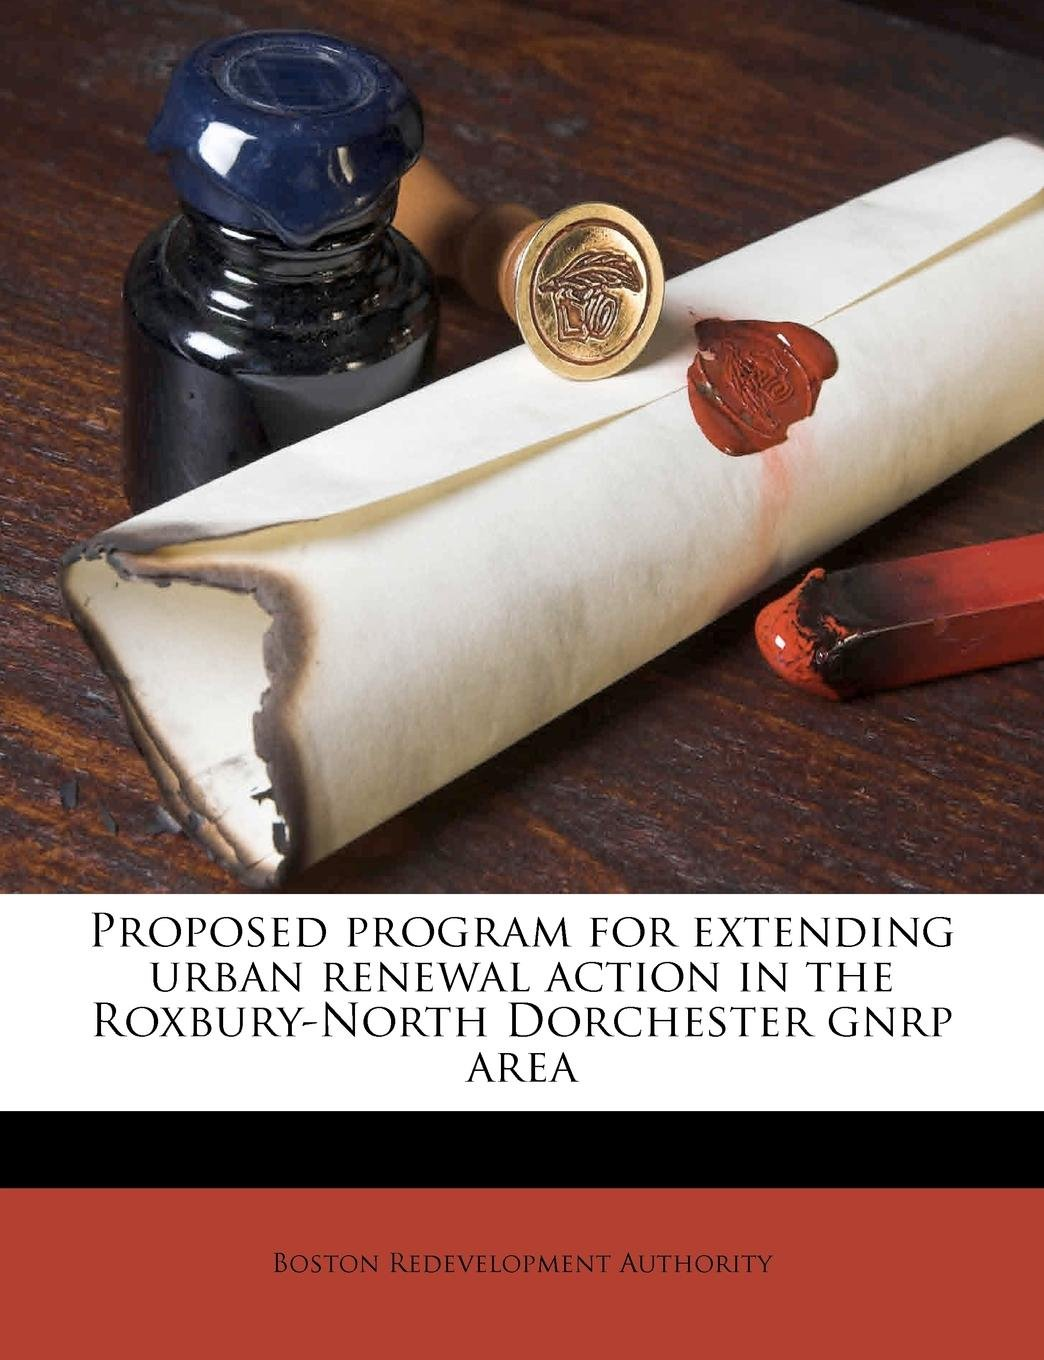 Proposed program for extending urban renewal action in the Roxbury-North Dorchester gnrp area pdf